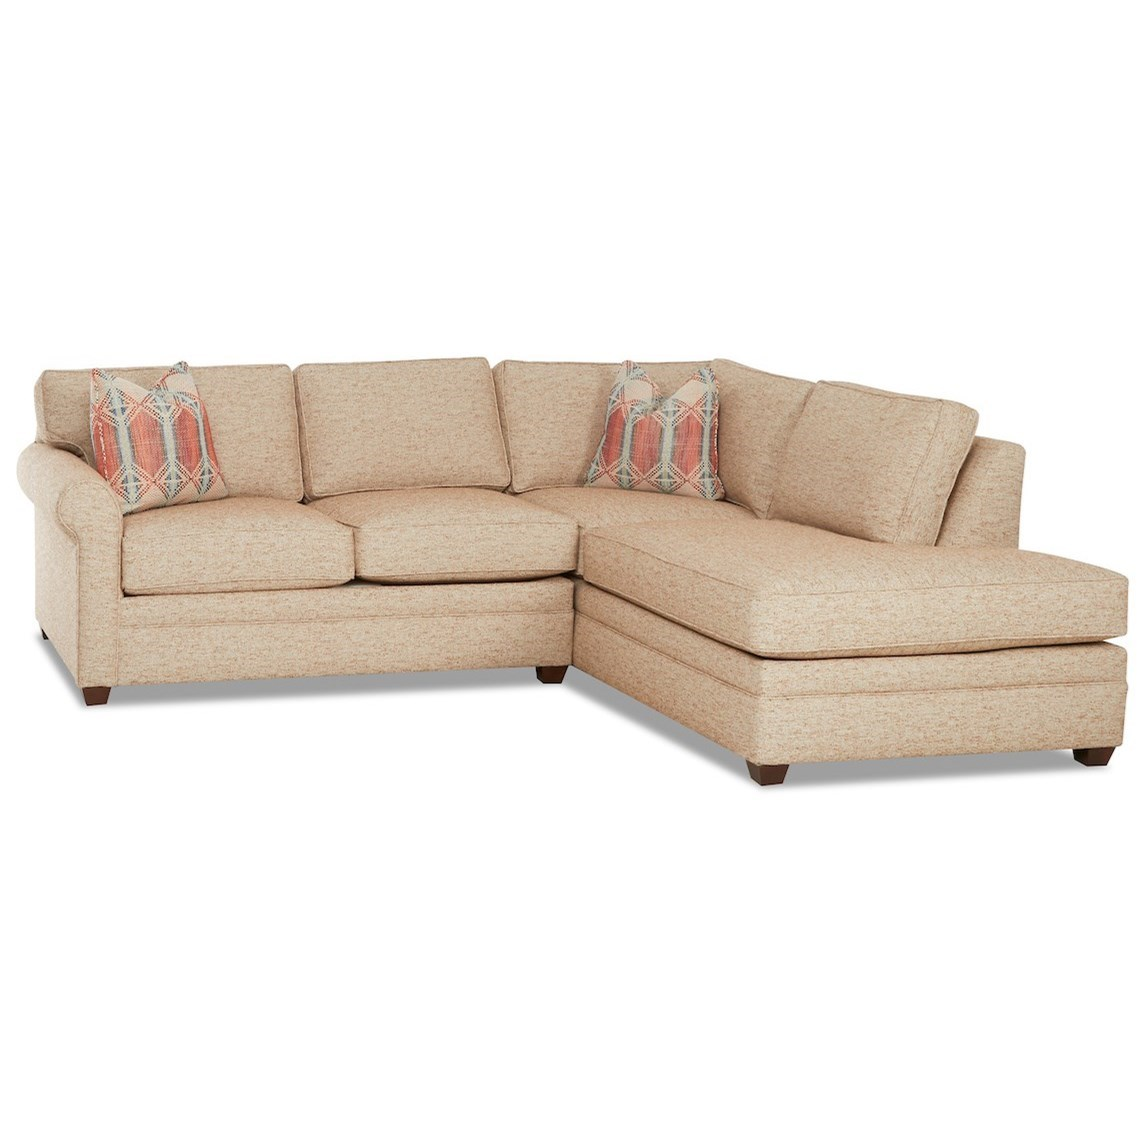 Casual 2-Piece Sectional Sofa with RAF Sofa Chaise